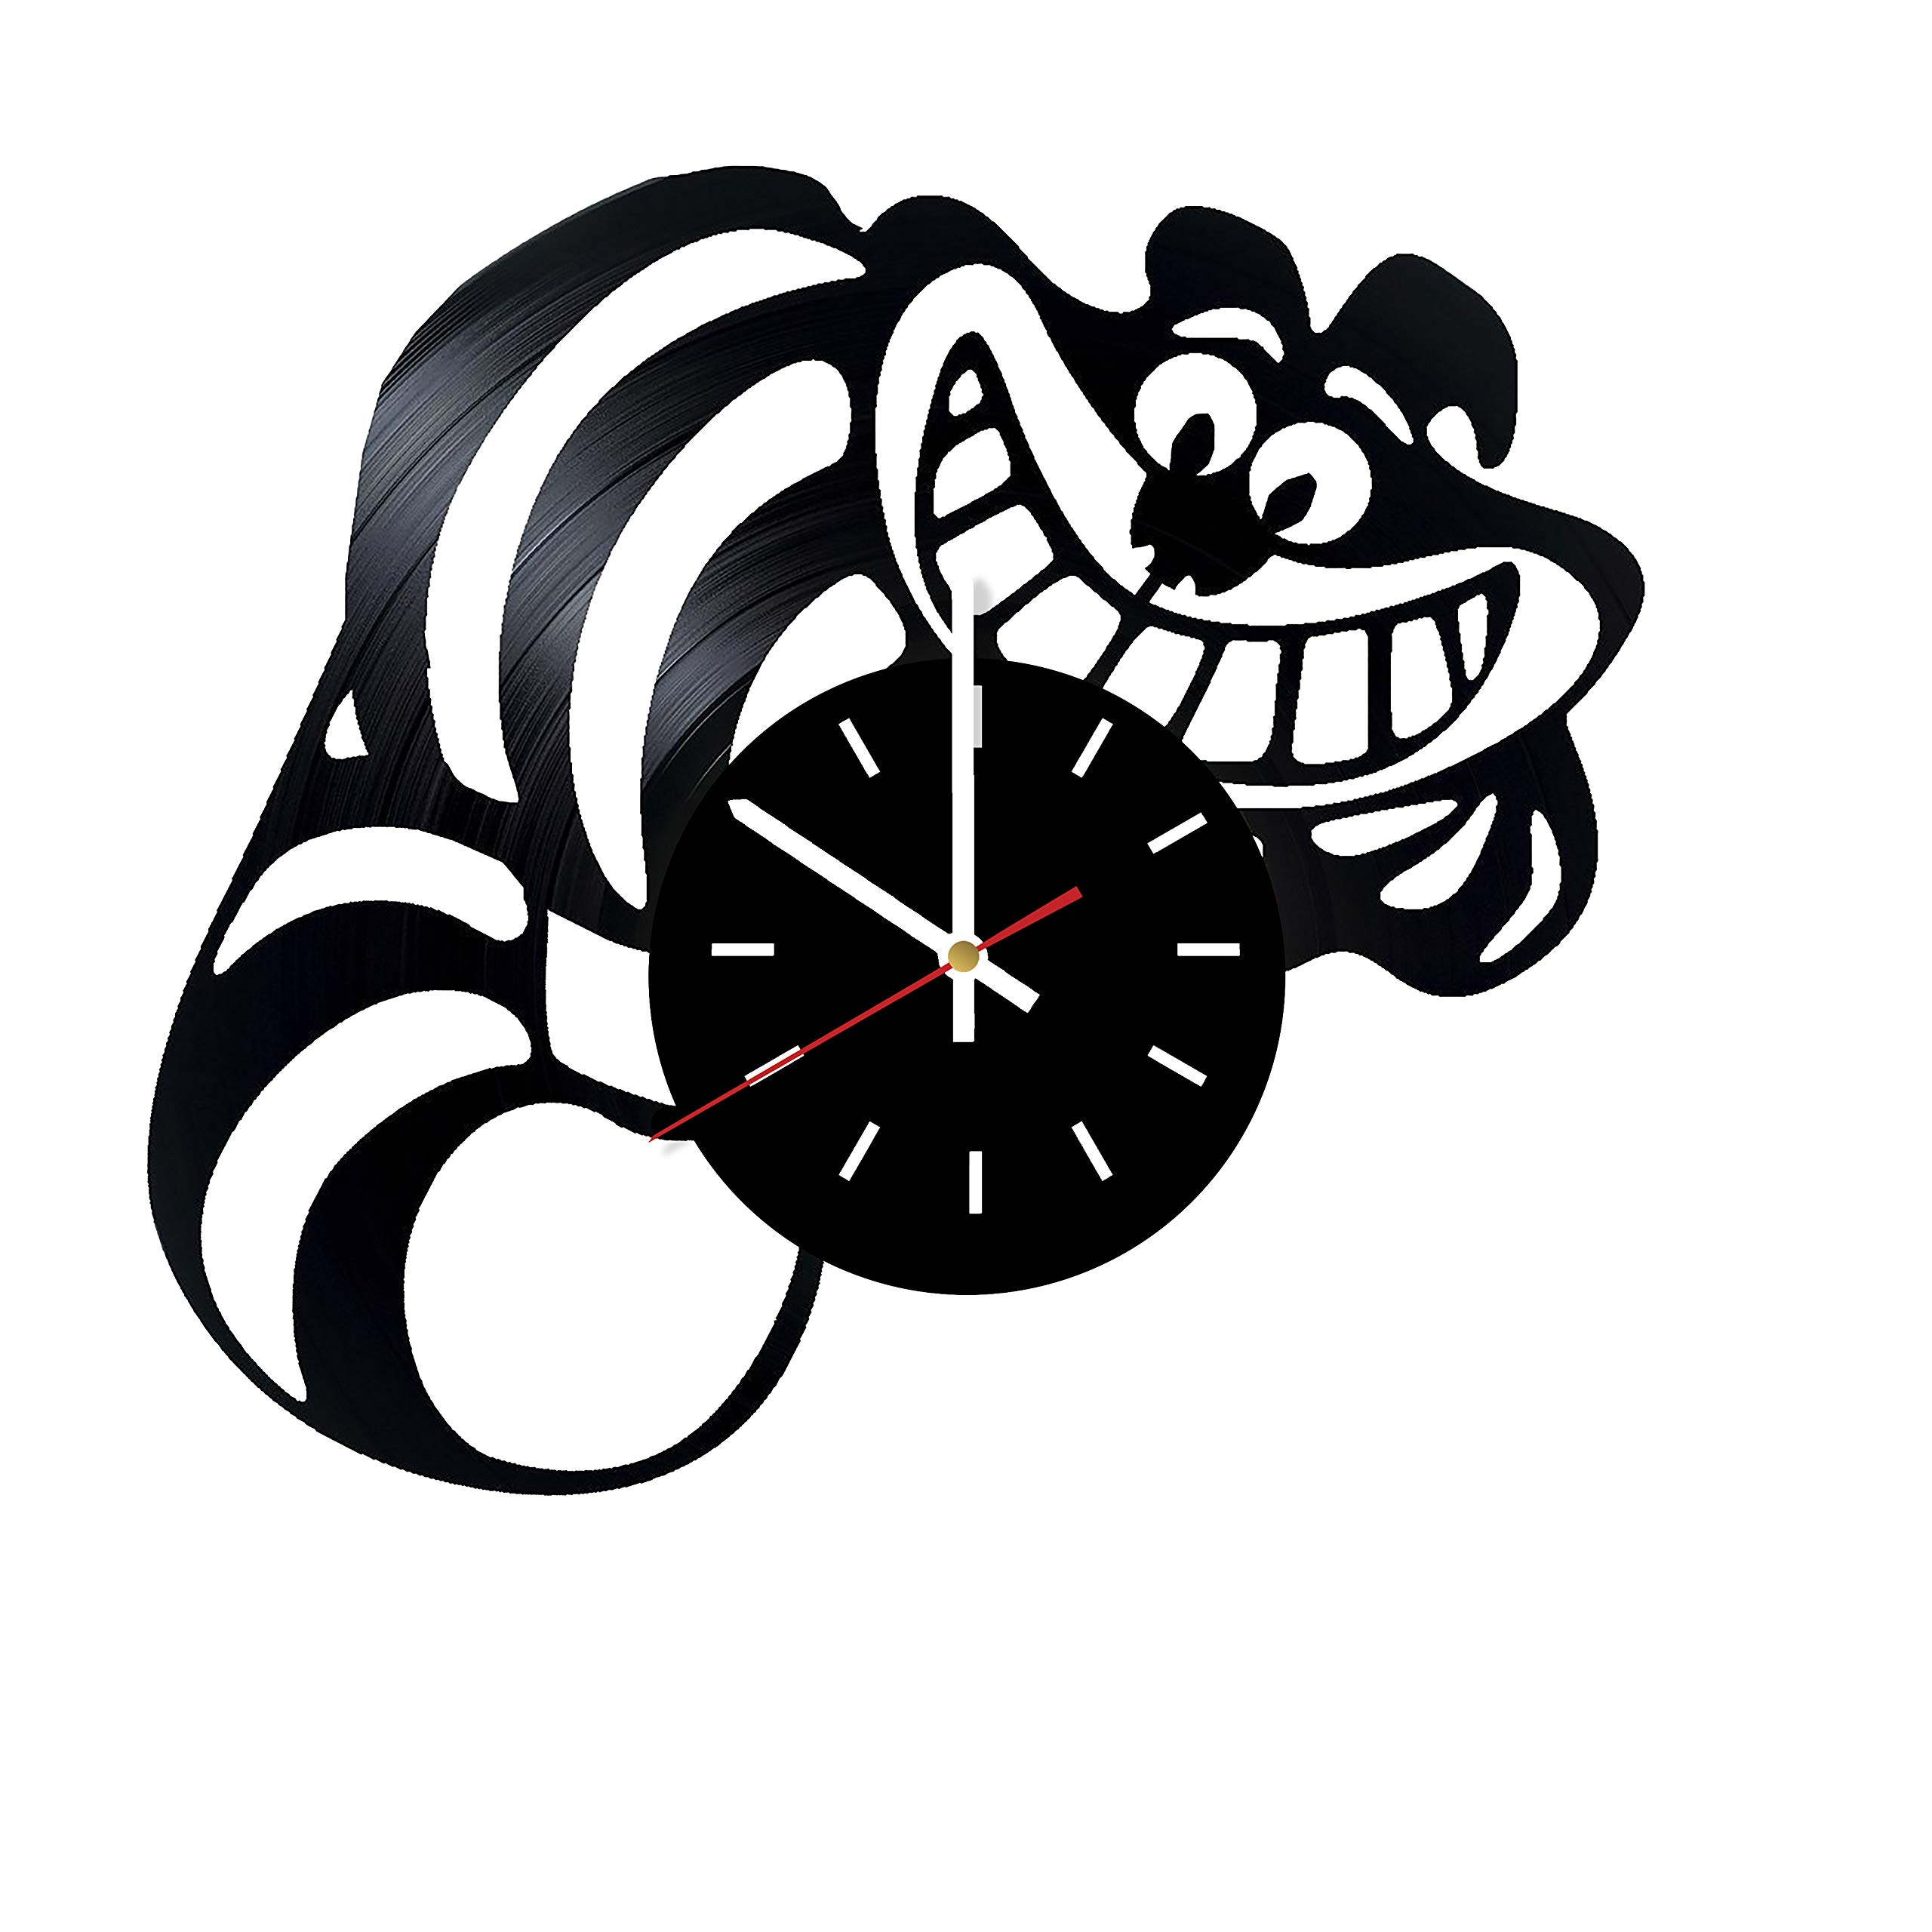 Everyday Arts The Cheshire Cat Alice in Wonderland Design Vinyl Record Wall Clock - Get Unique Bedroom or Garage Wall Decor - Gift Ideas for Friends, Brother - Darth Vader Unique Modern Art